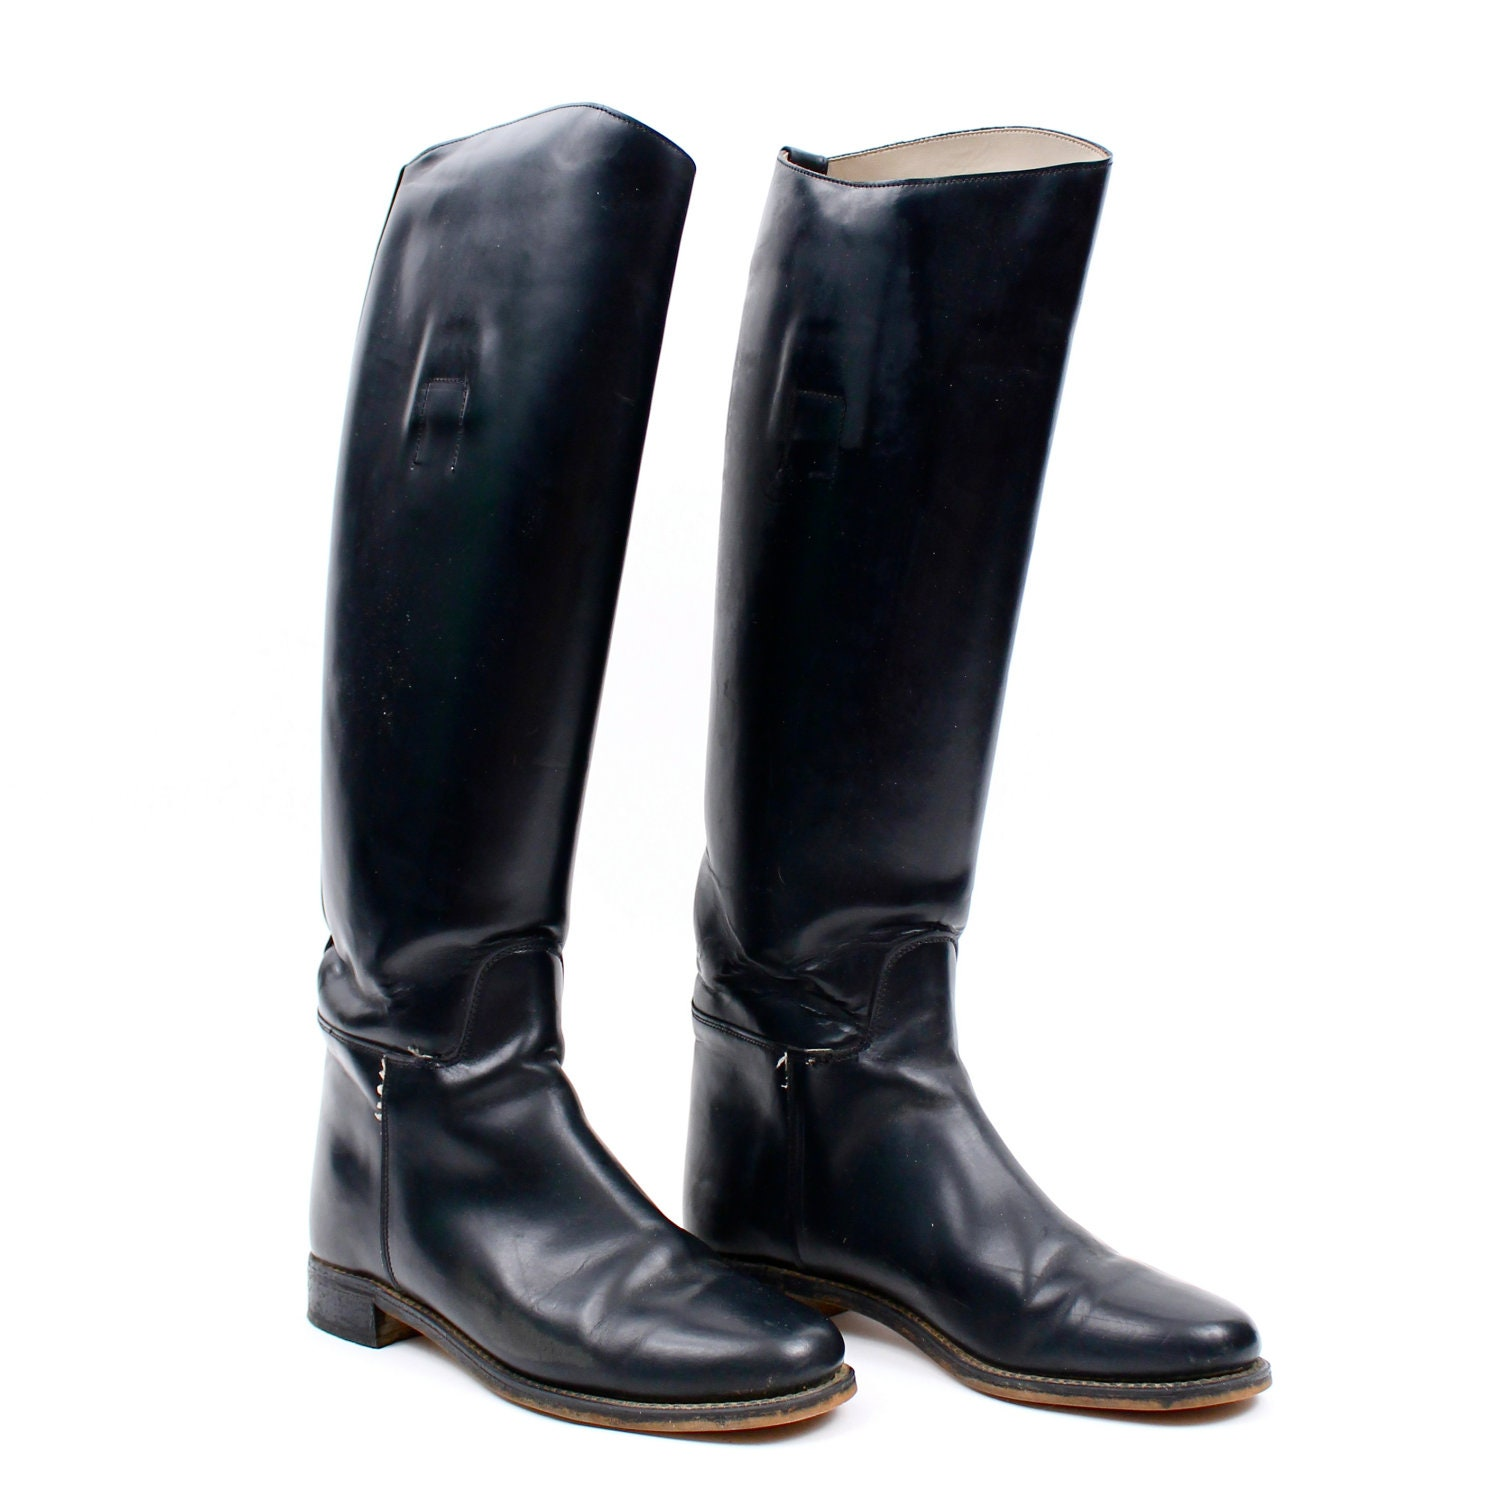 Awesome WOMENS LADIES FUR TRIM HORSE RIDING YARD COUNTRY BOOTS FAUX LEATHER GRIP SOLE | EBay